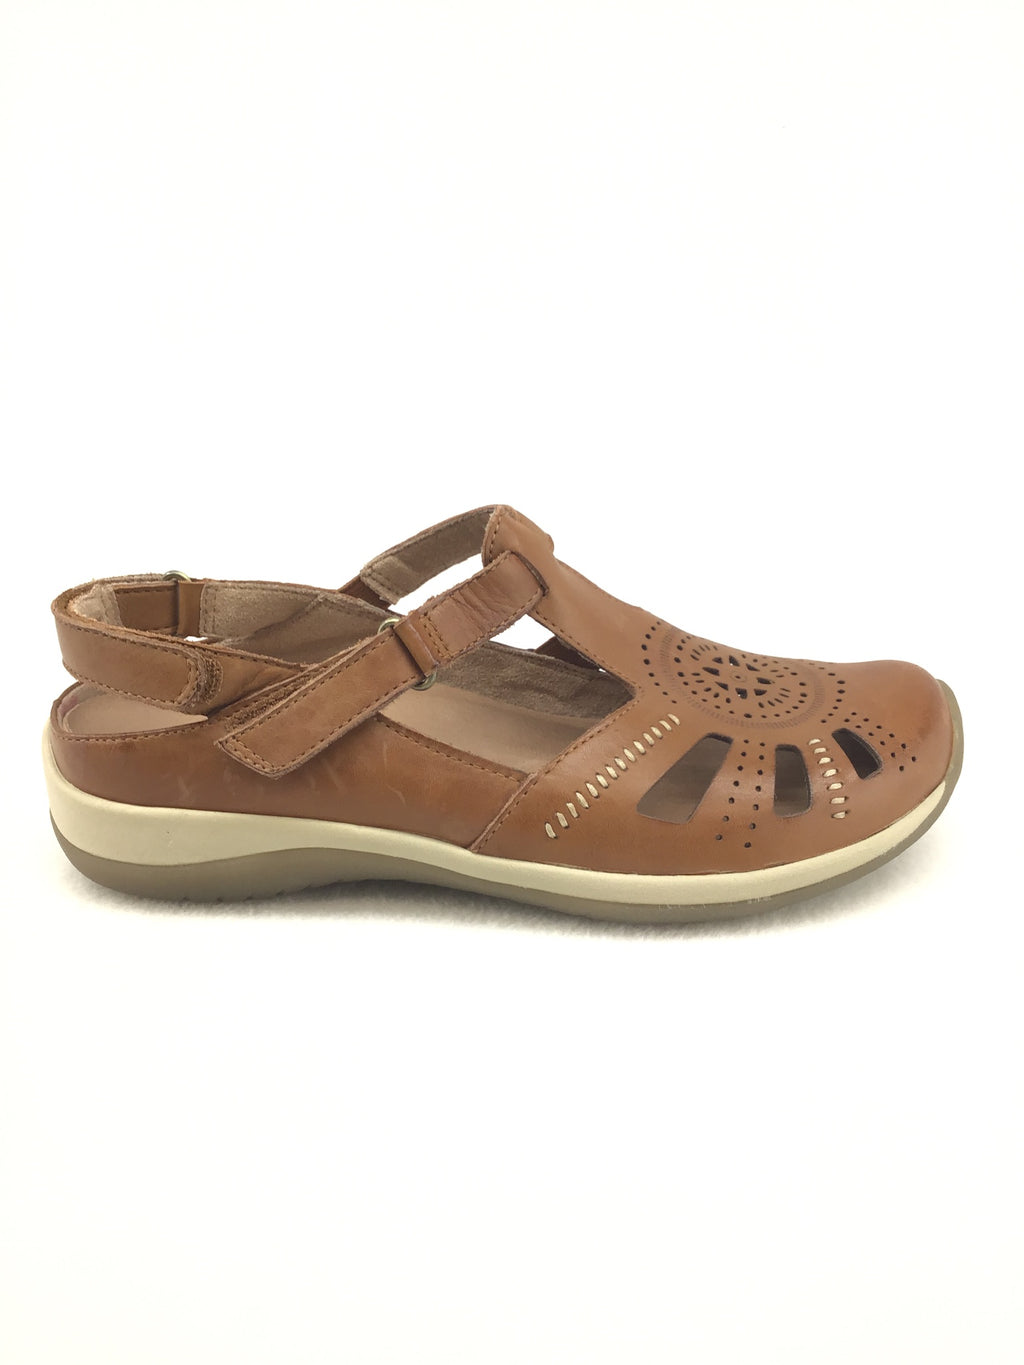 Earth Comfort Sandals Size 8